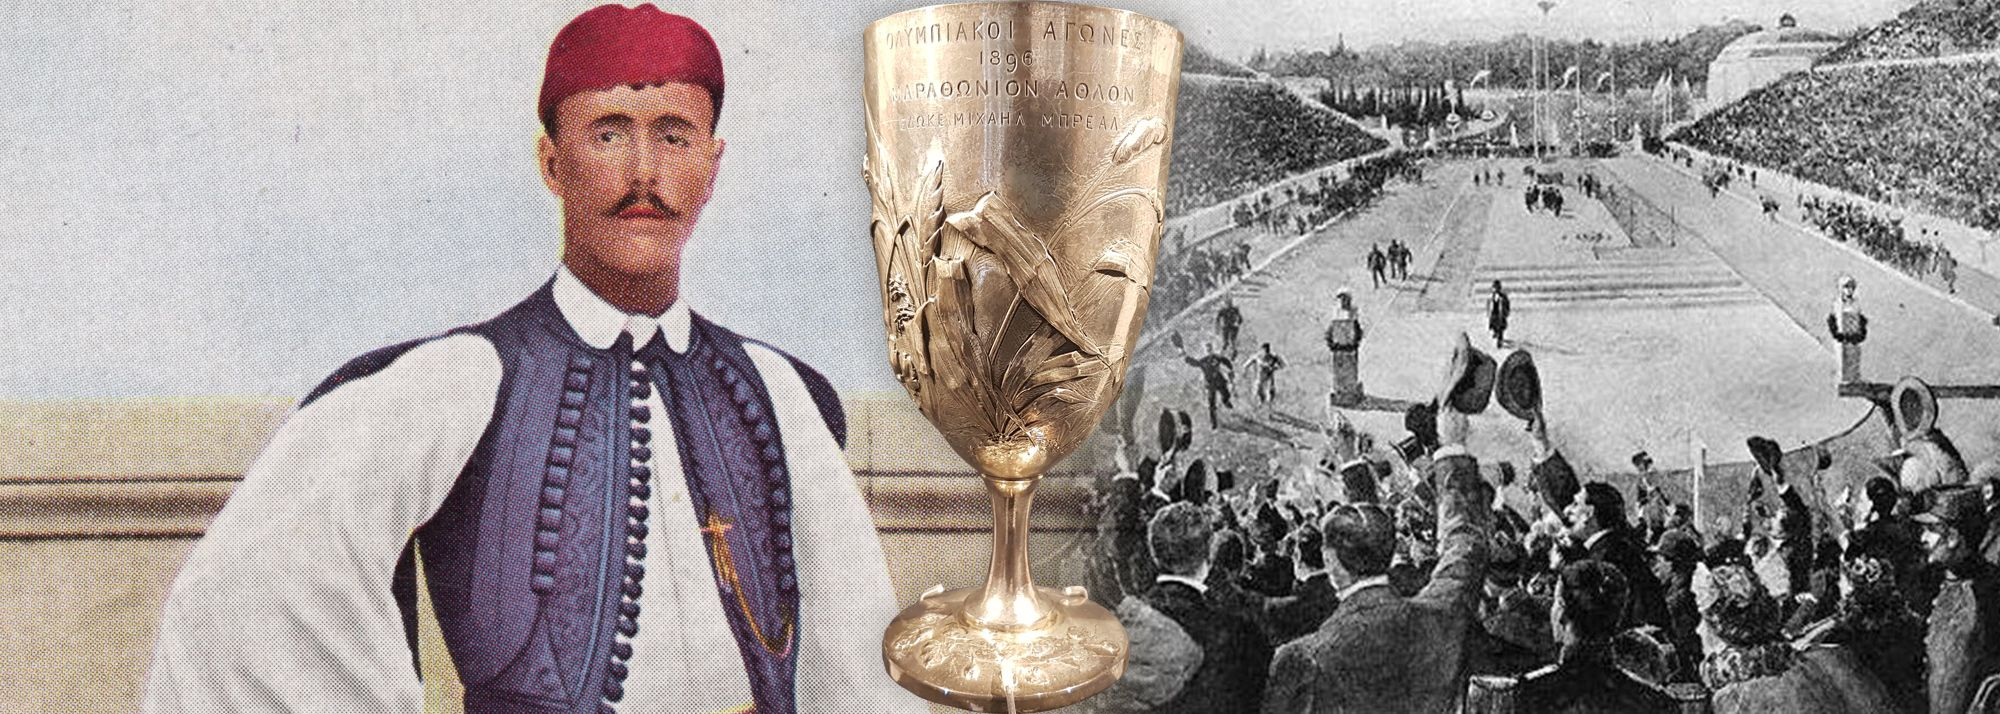 Looking back at when Spiridon Louis won the 1896 Olympic marathon, securing the Breal Cup in the process